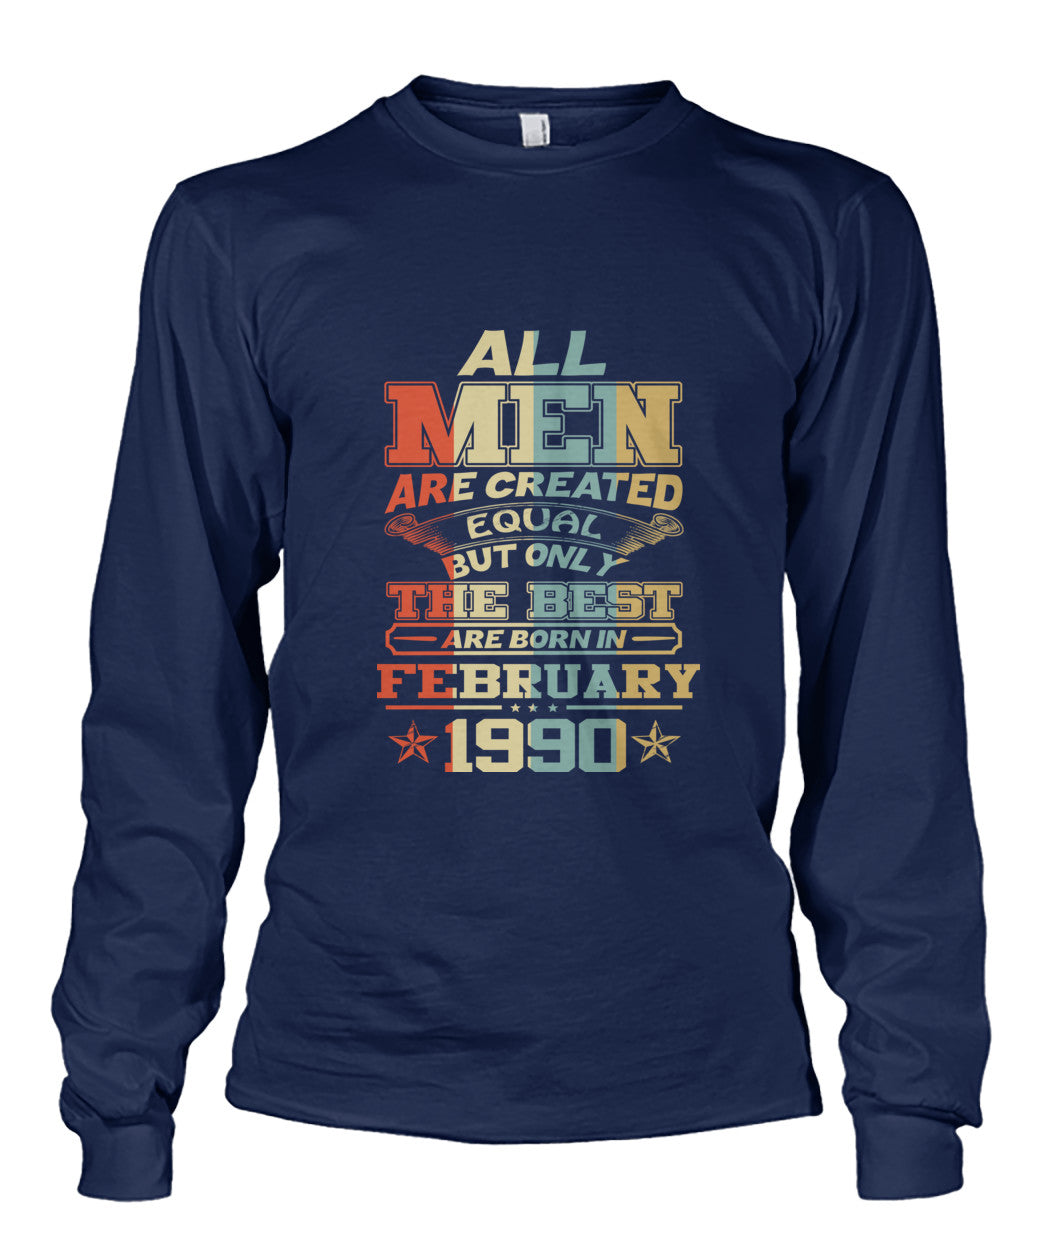 All Men Are Created Equal Only Best Are Born February 1990